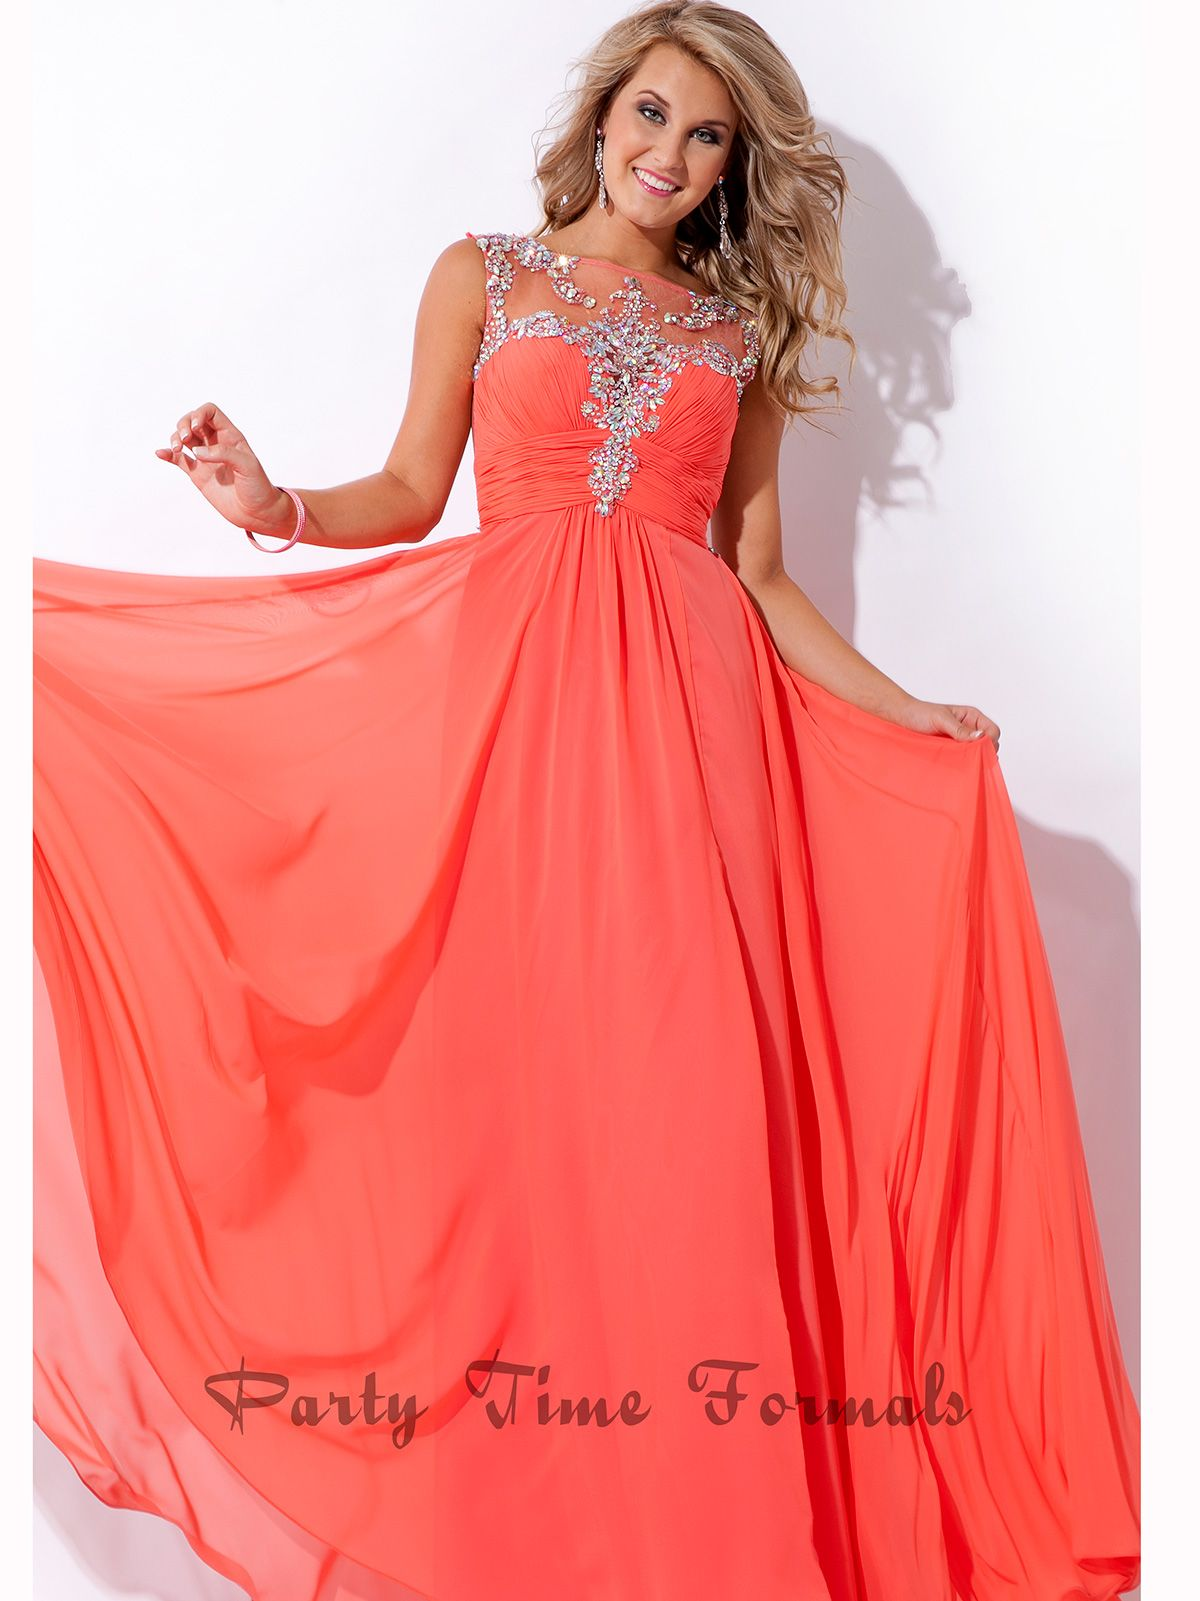 Ruched Beaded Bodice Party Time Prom Dress 6467 : DressProm.net ...